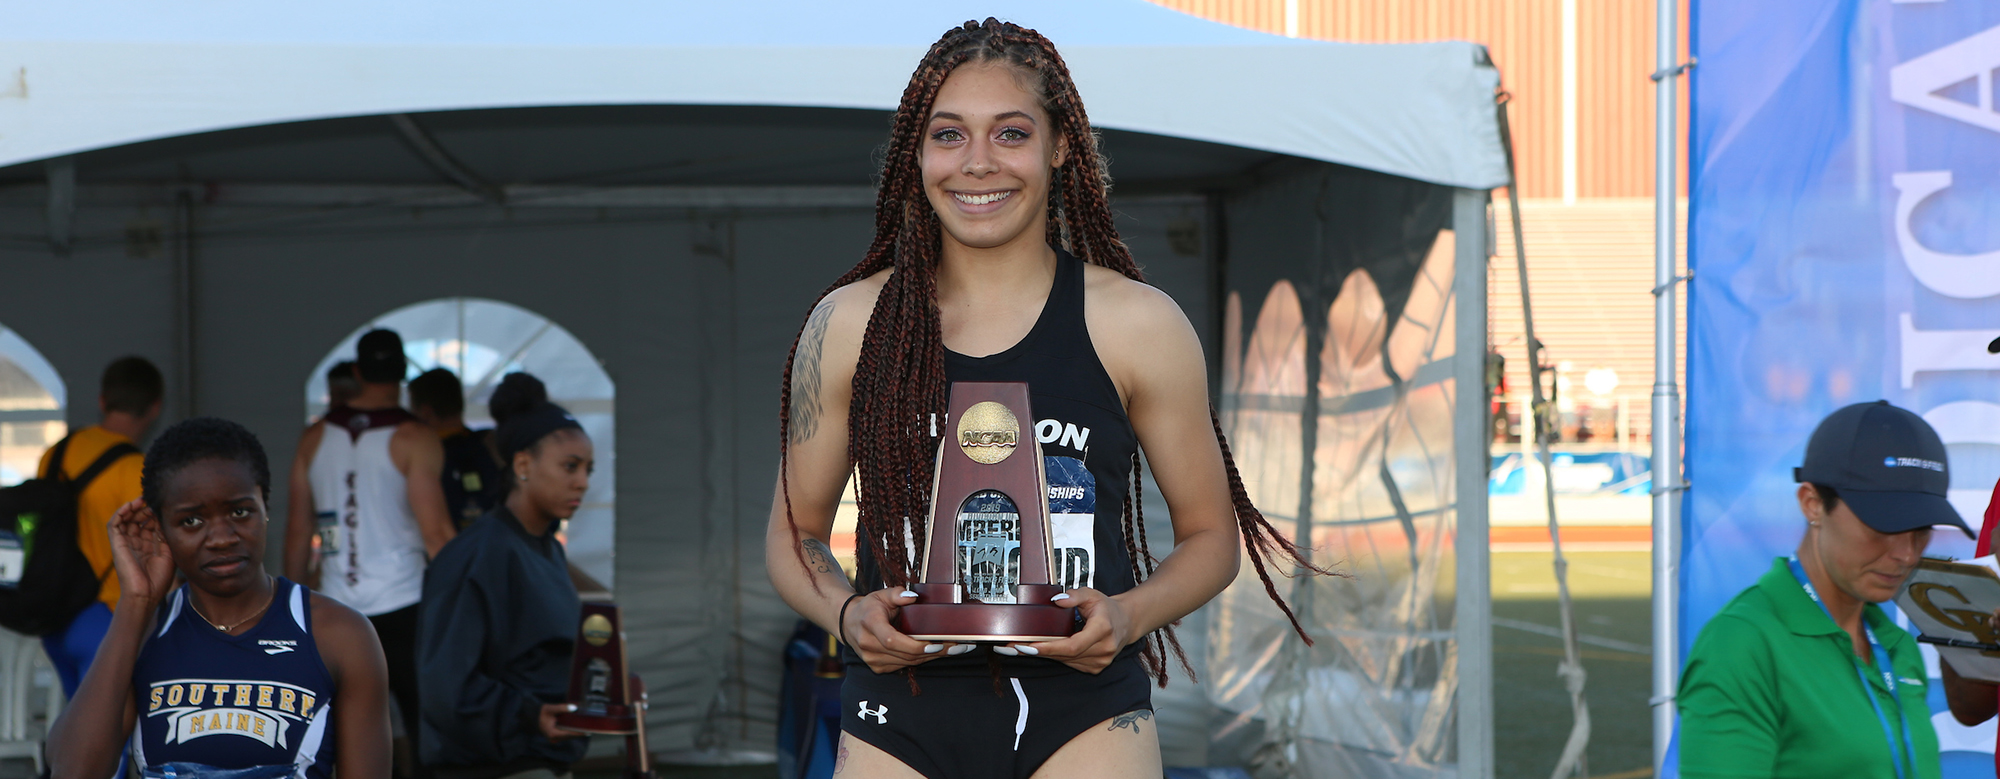 Kimberly Hammond Earns All-America Status in Long Jump, Places Seventh